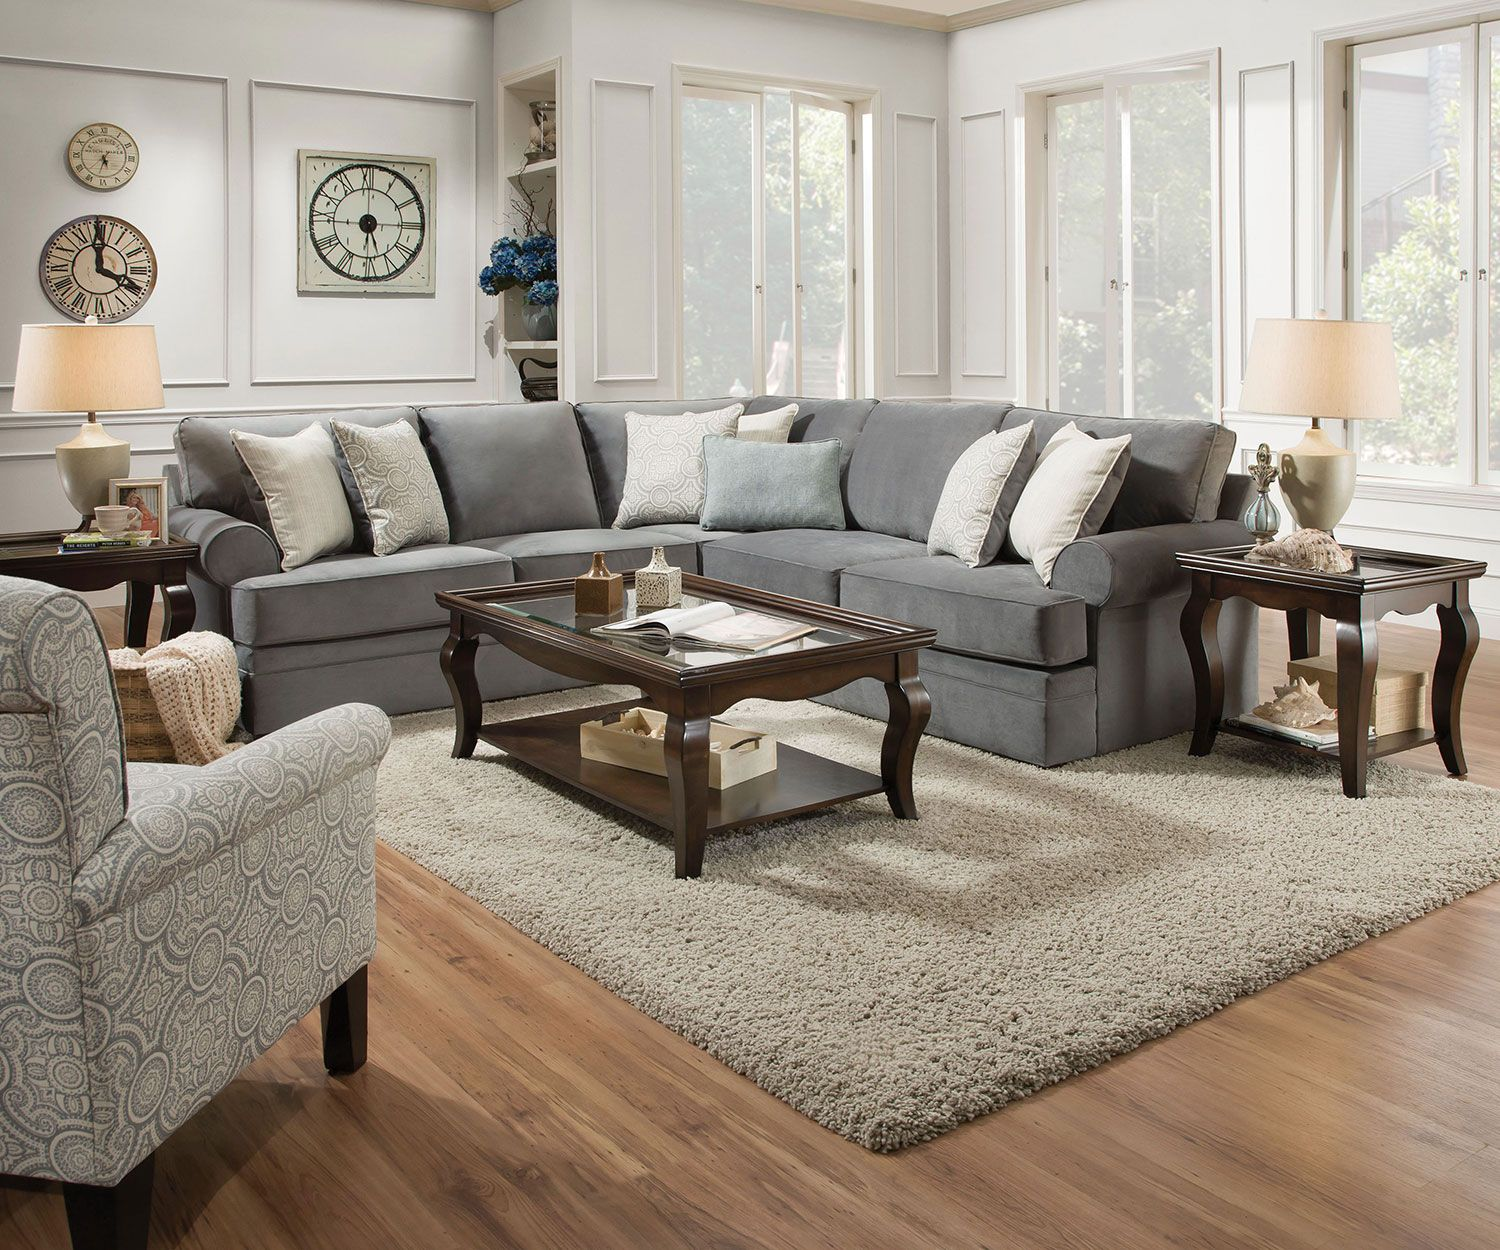 Best The Nyos Sectional Sofa Brings A Cozy And Casual Feel To 400 x 300